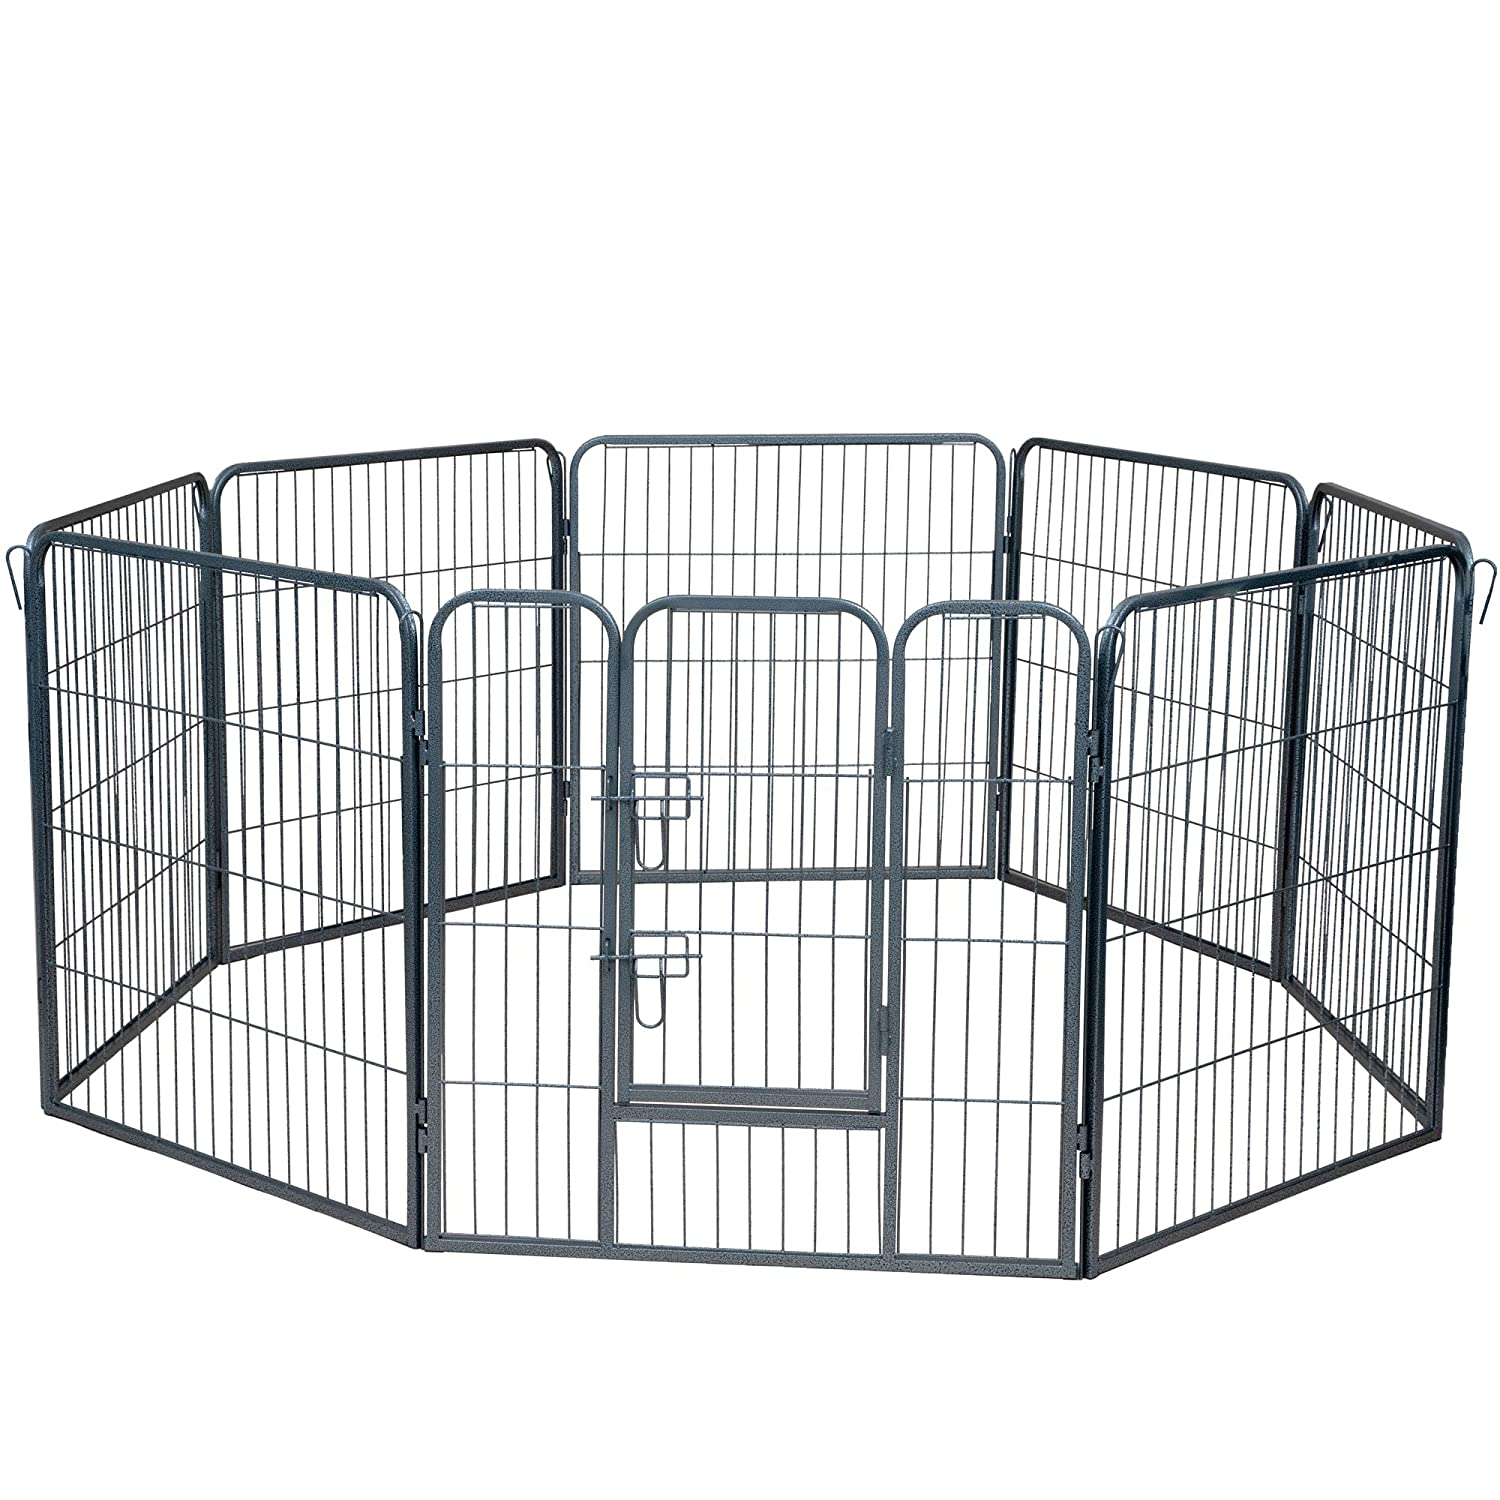 Paws and Pals Pet Exercise Pen Tube Gate